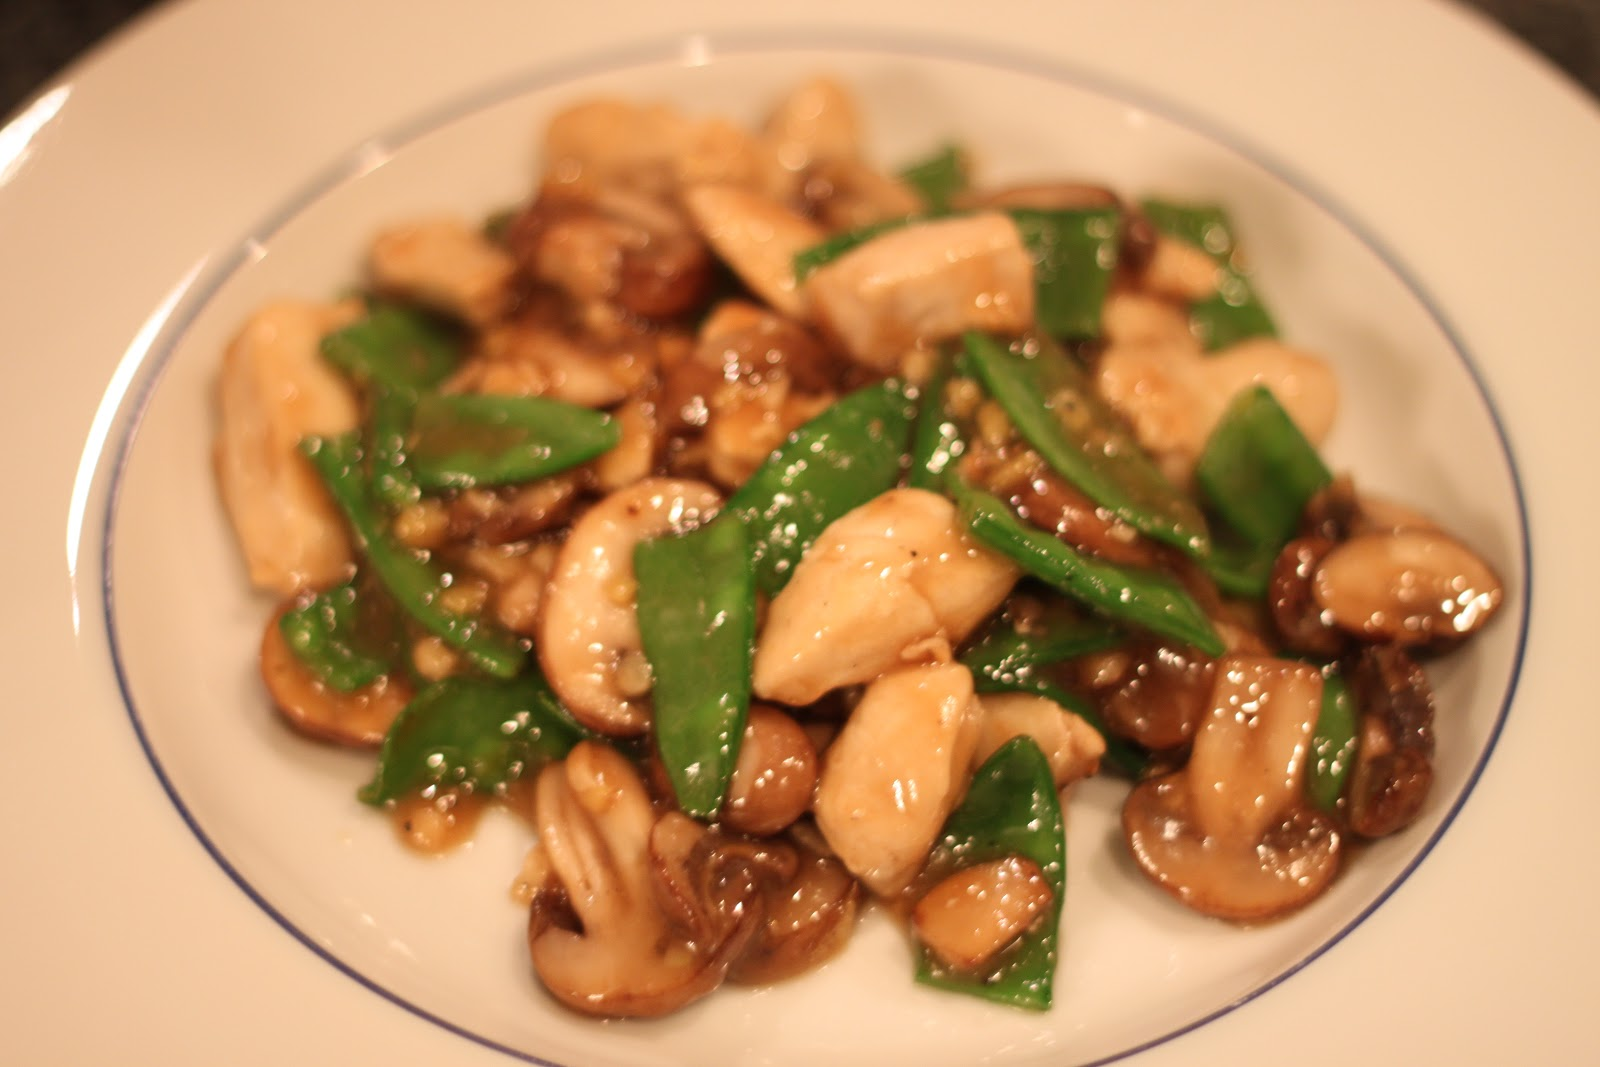 Good Clean Fun: Moo Goo Gai Pan